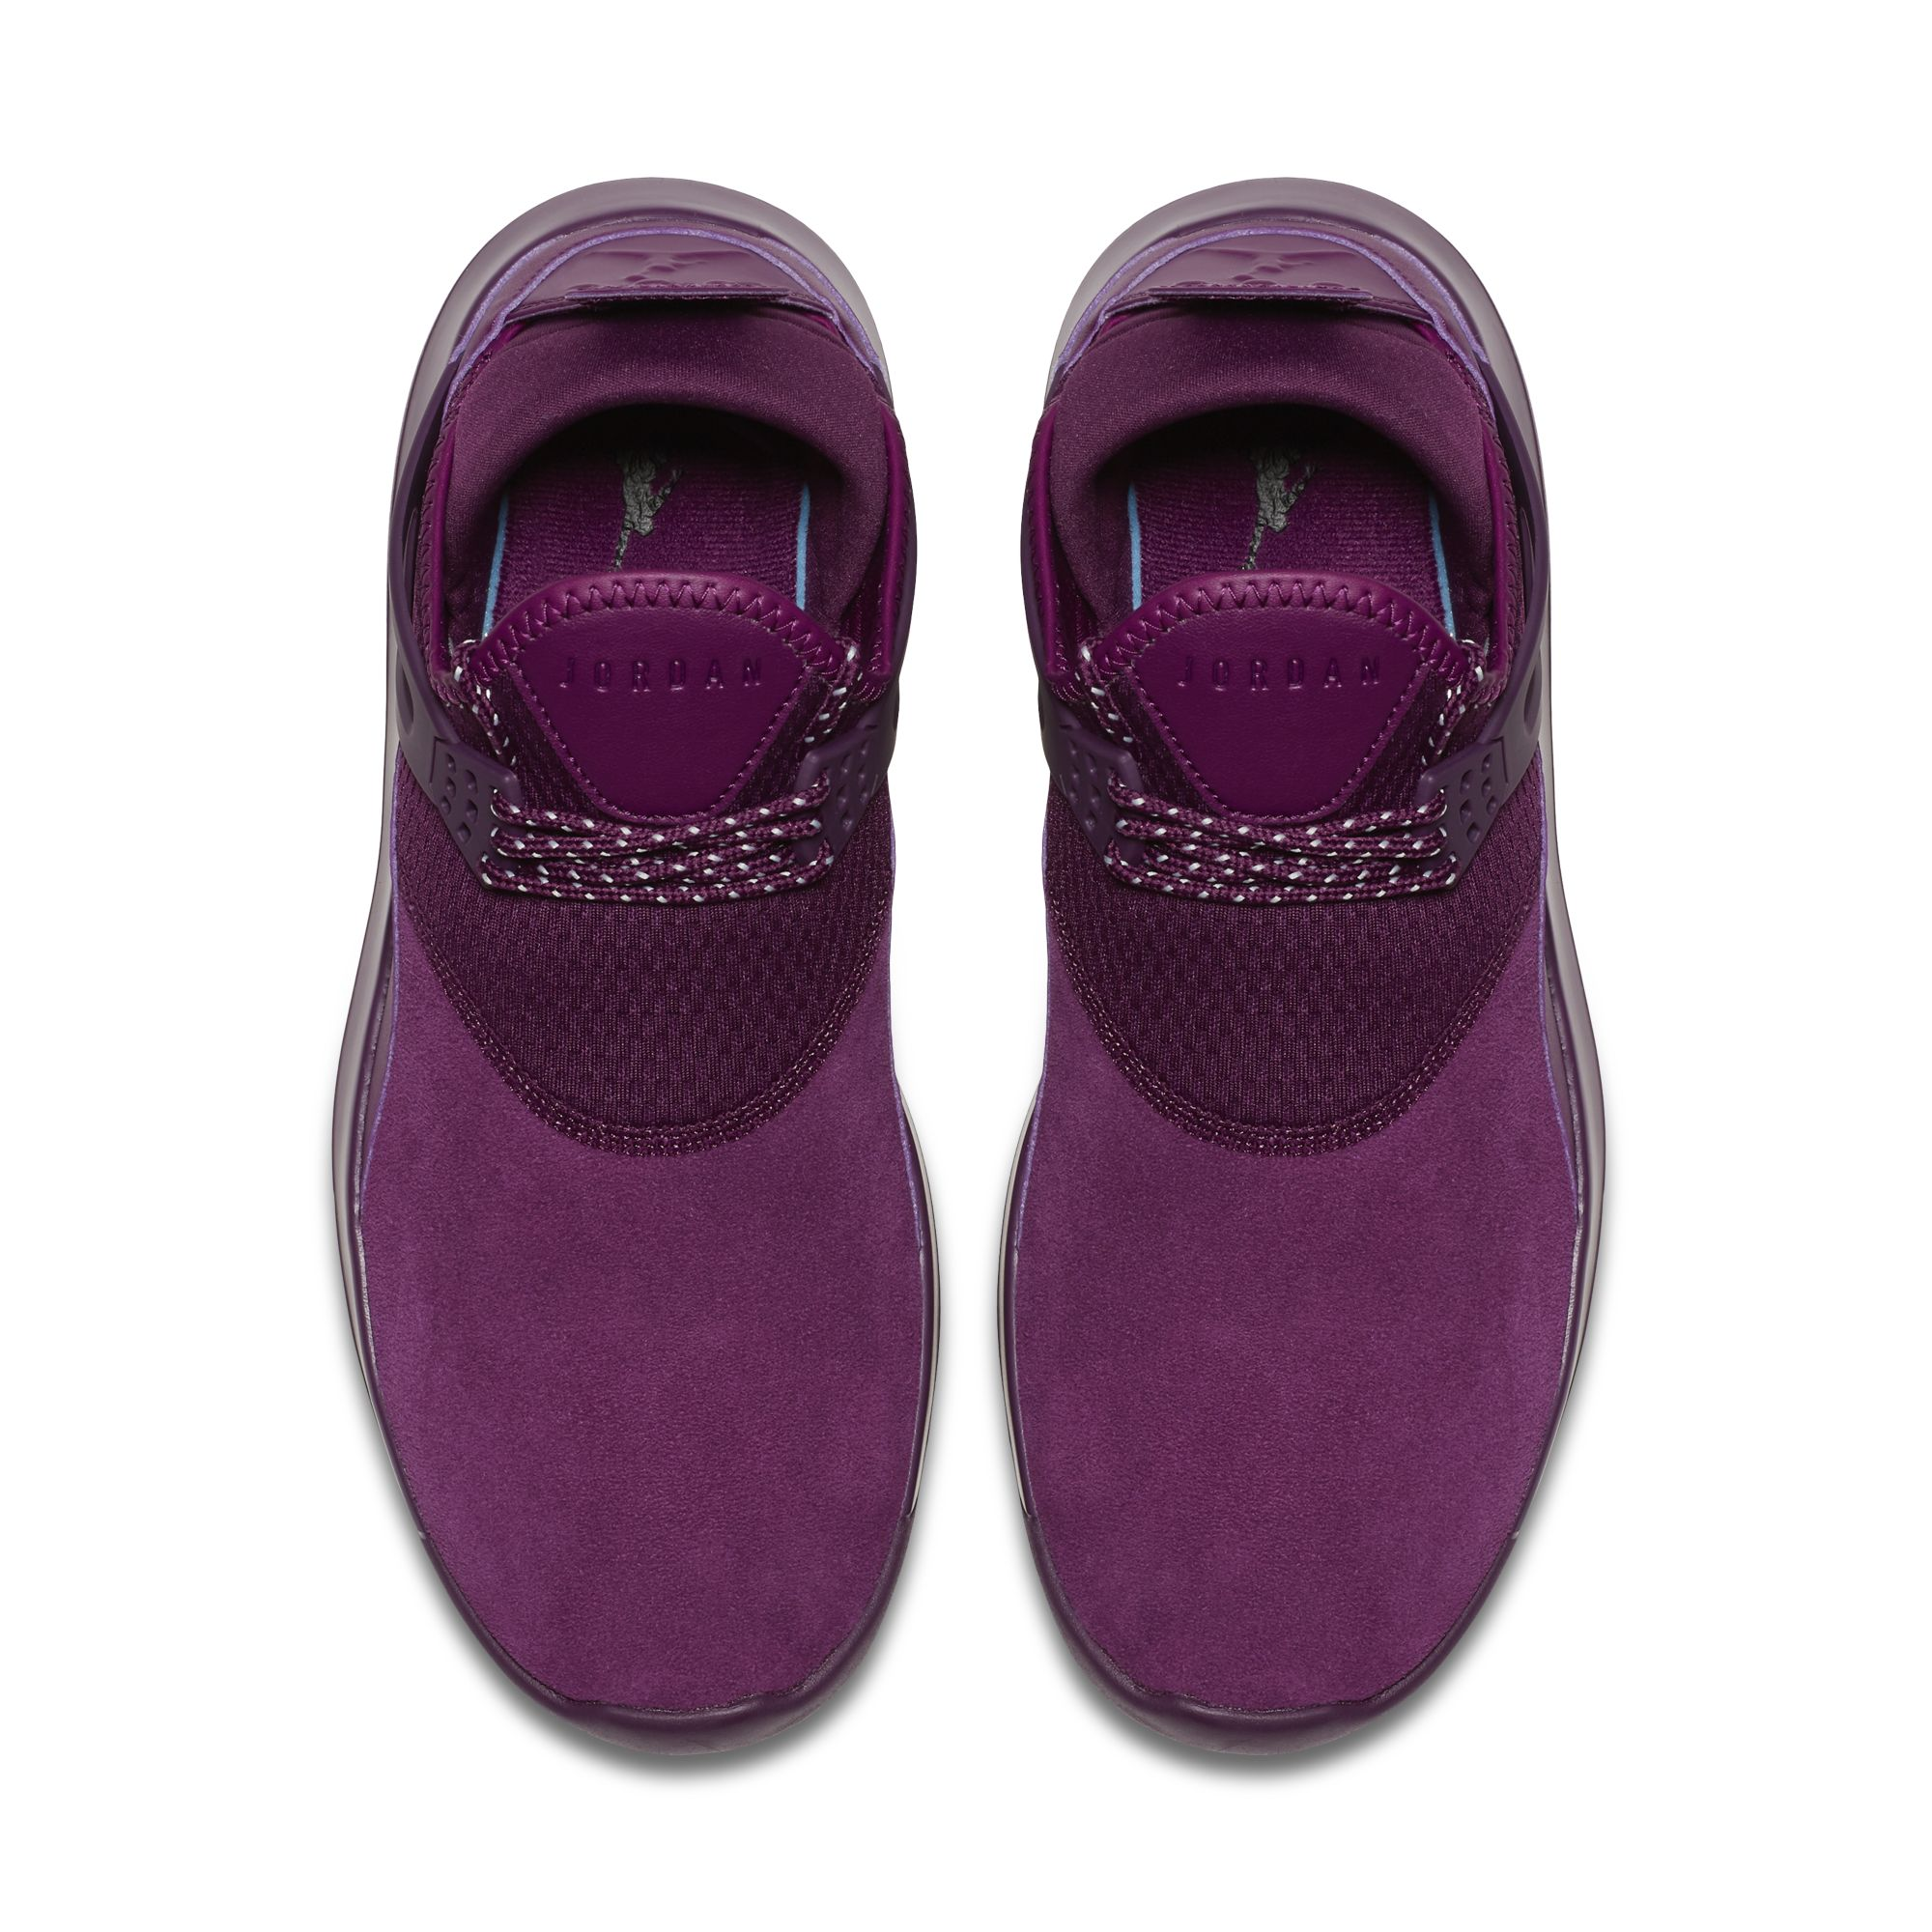 jordan fly 89 purple 3 copy